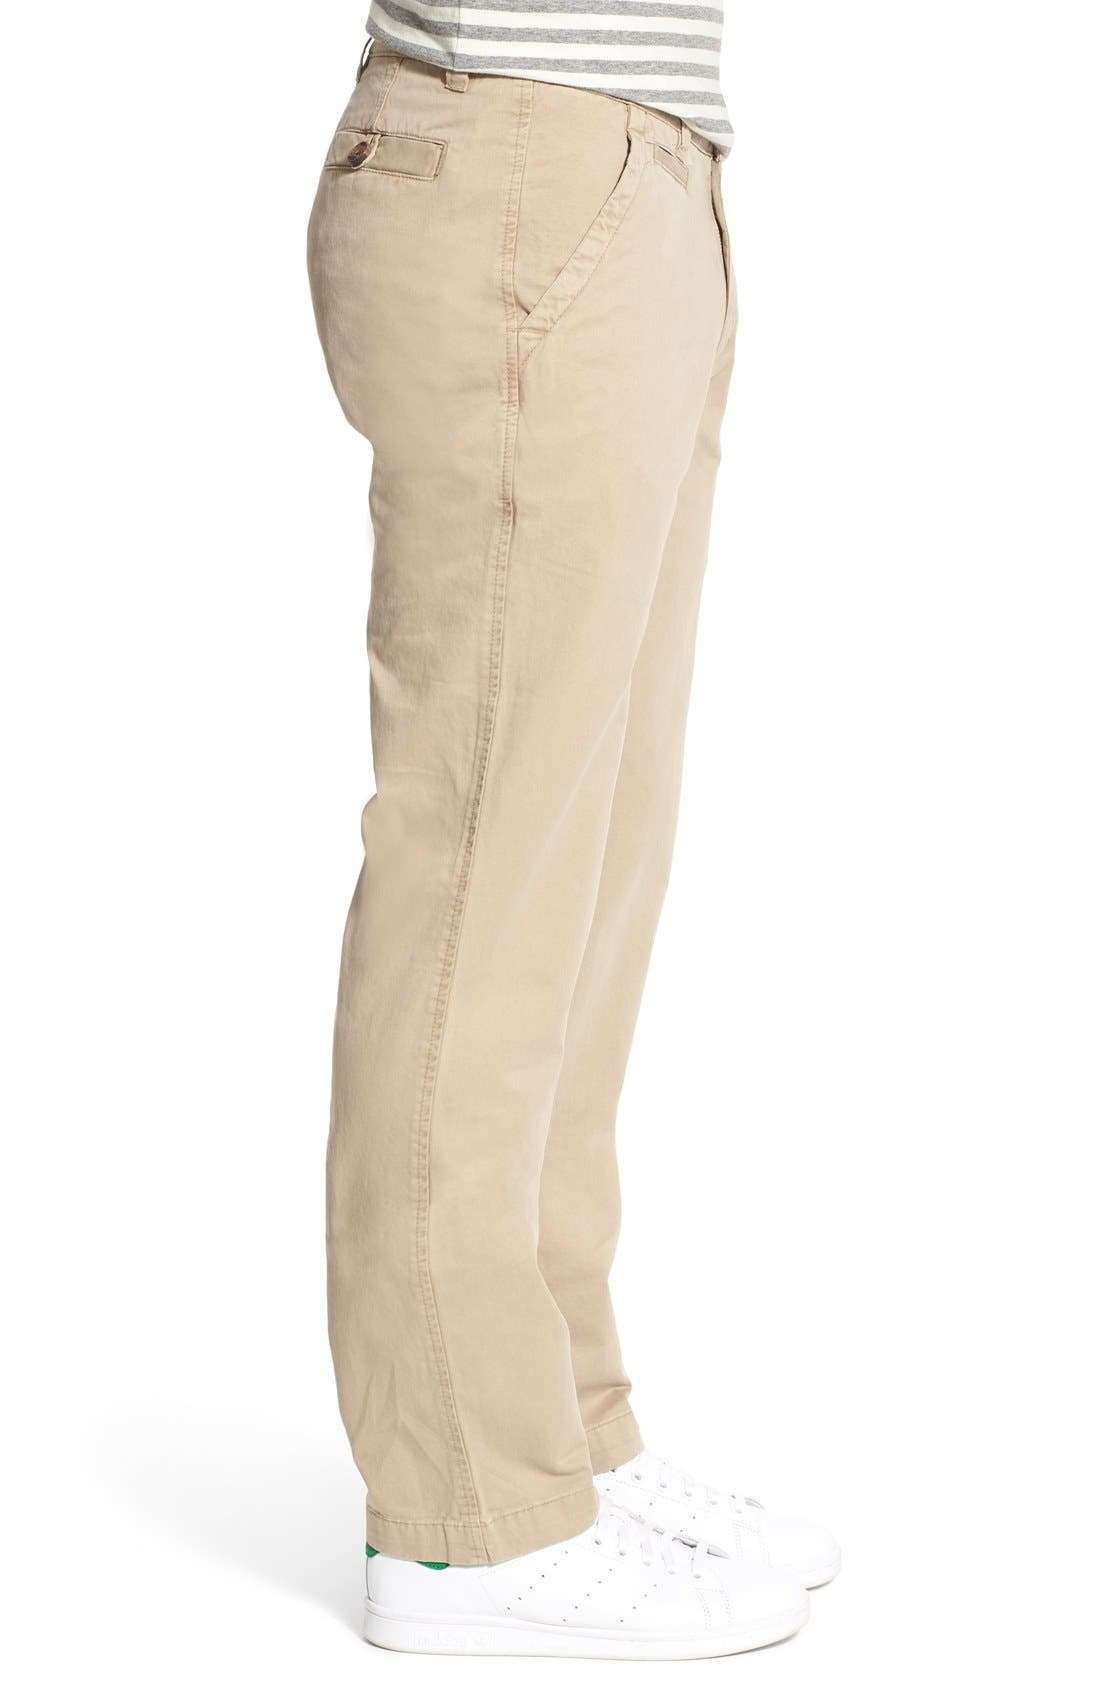 'Sahara' Trim Fit Vintage Washed Twill Chinos,                             Alternate thumbnail 20, color,